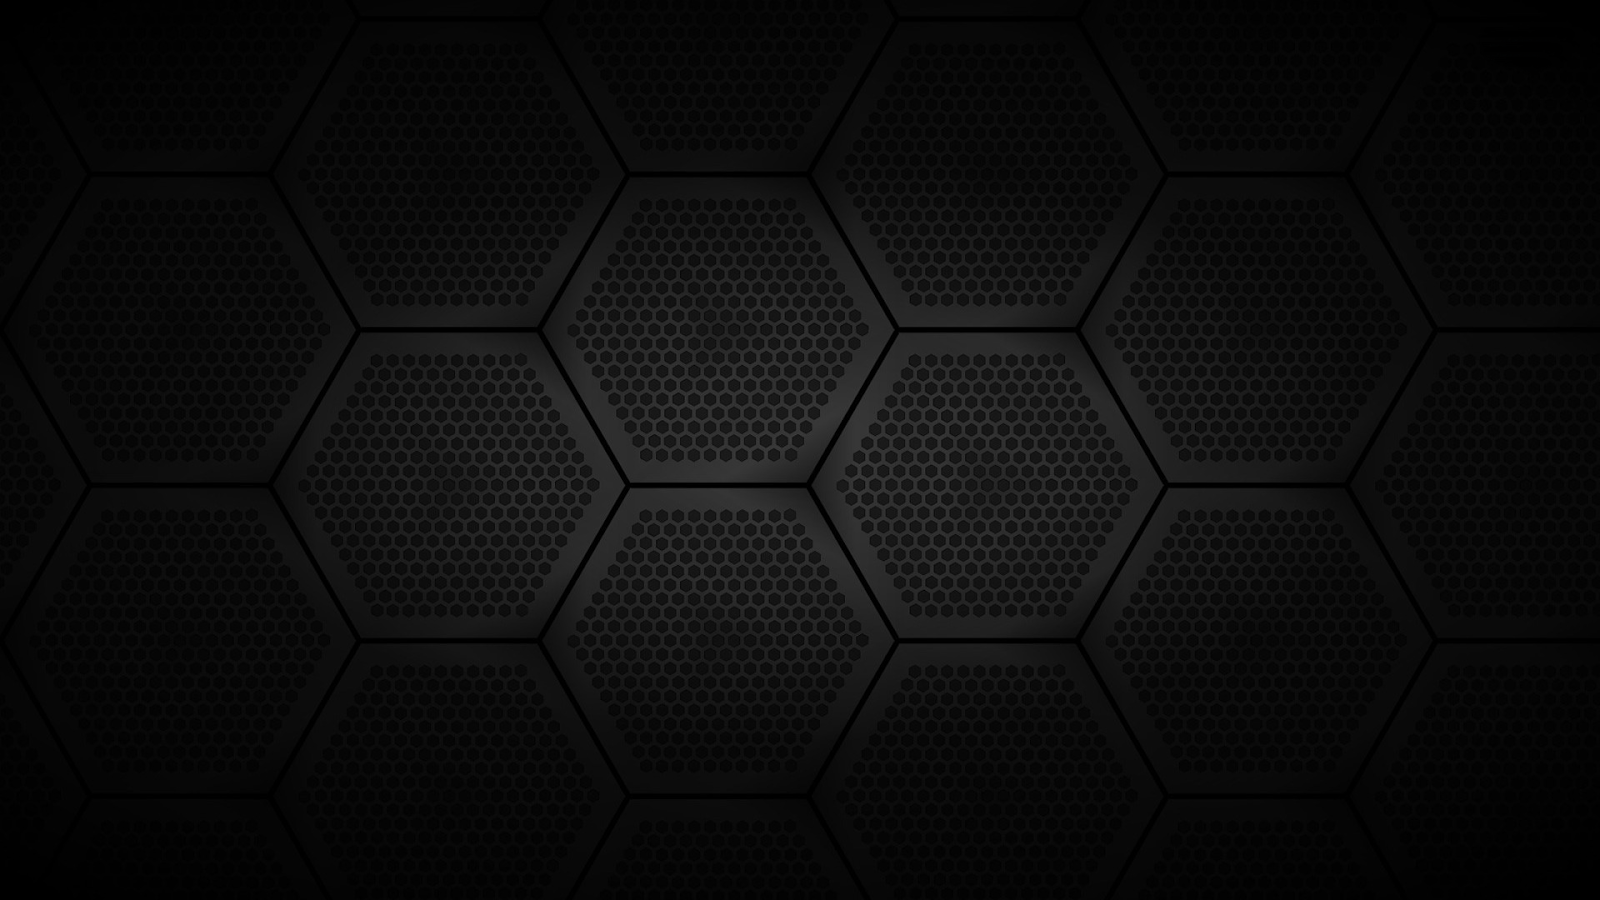 Twitch Wallpapers 1600x900 | BsnSCB